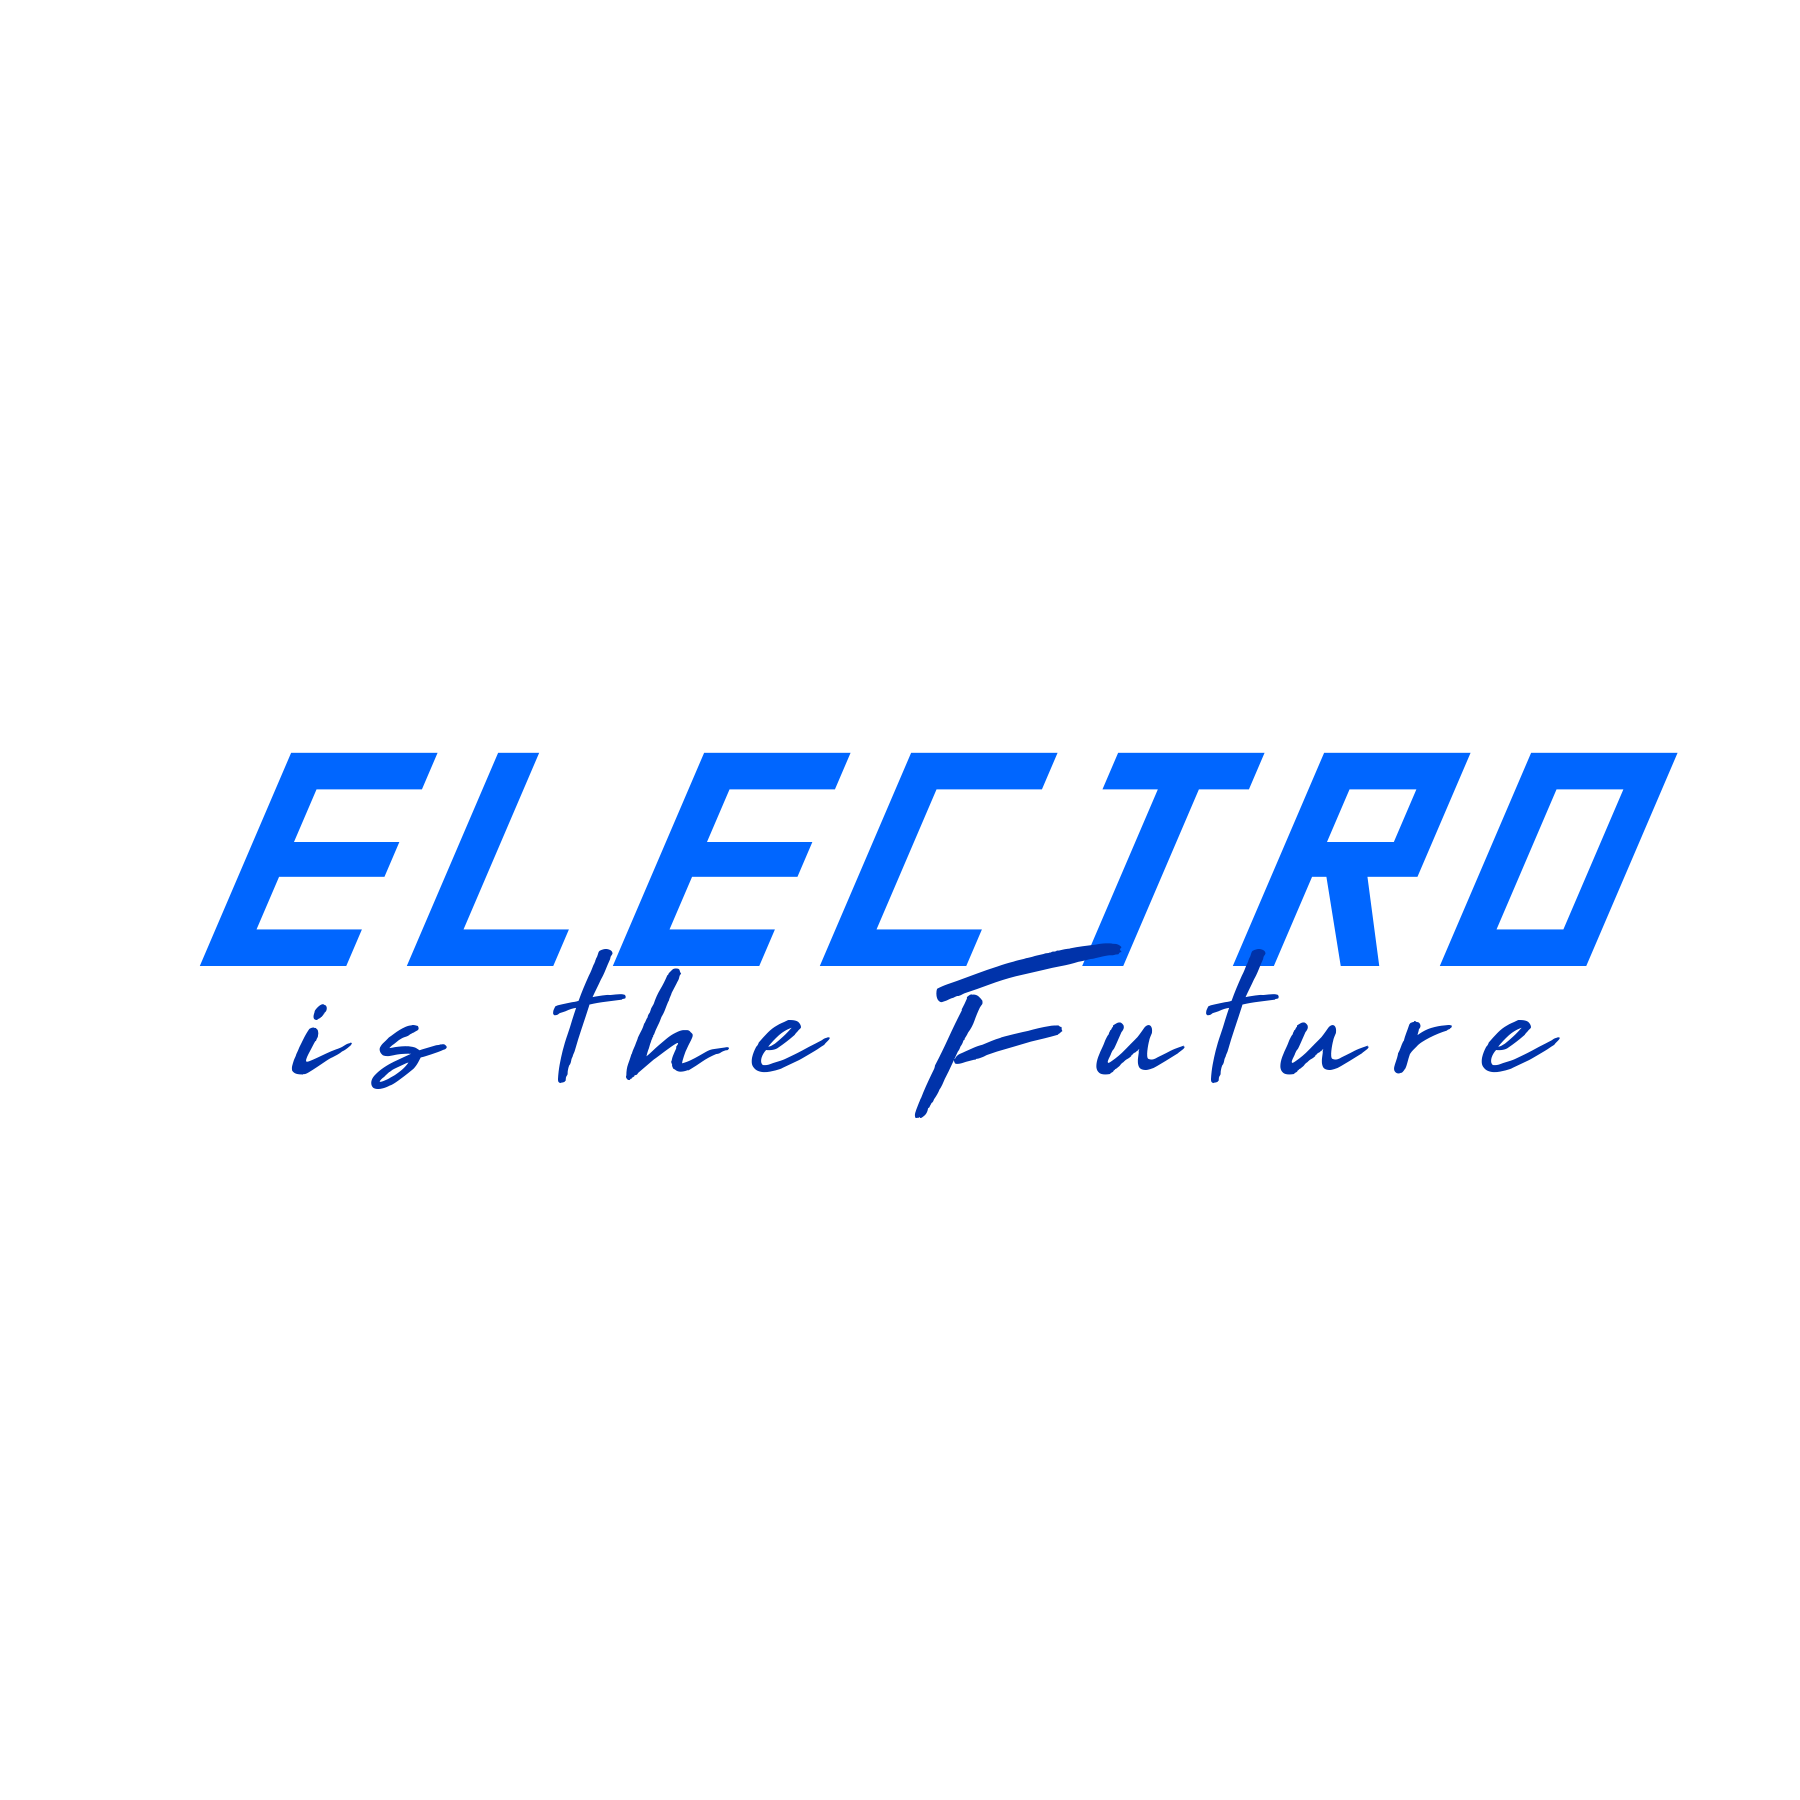 ELECTRO IS THE FUTURE